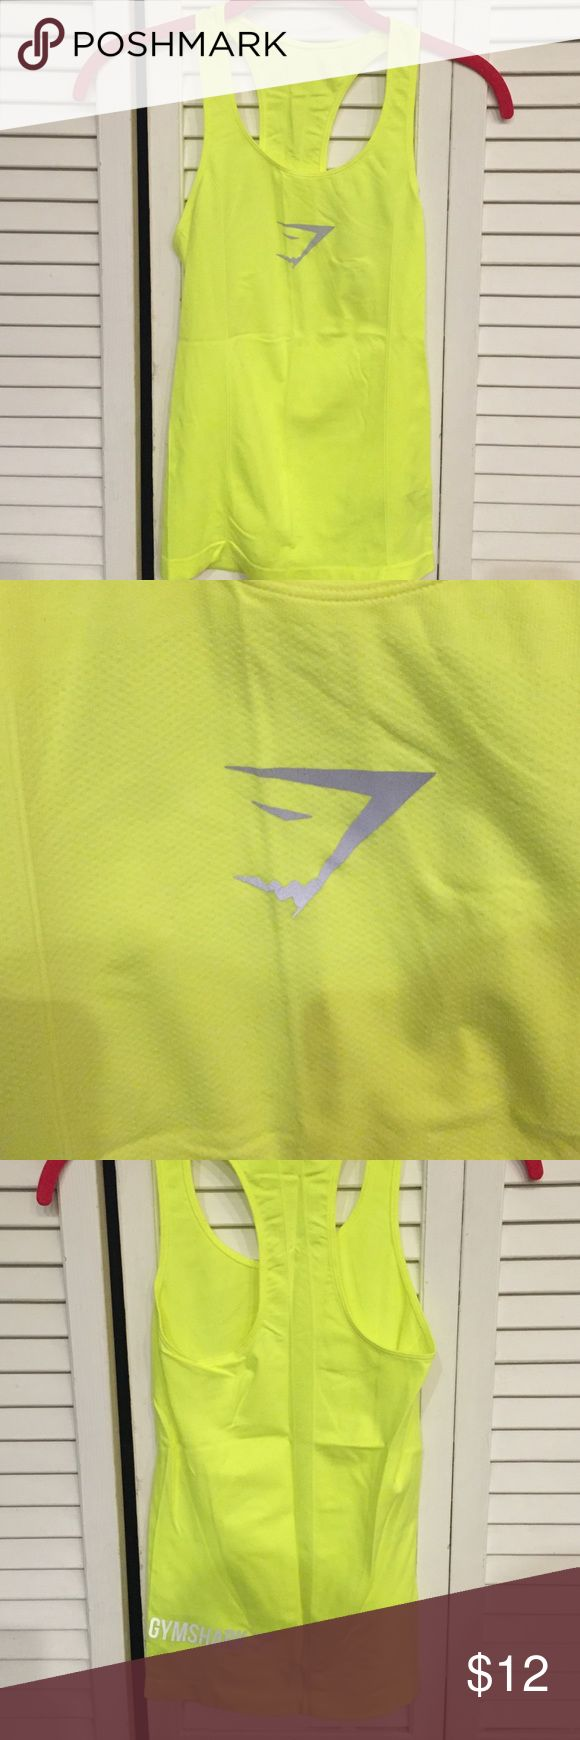 Gymshark Neon Yellow Tank Gymshark Neon Yellow Tank. Size S. Never Worn. Smoke free home. Gymshark Tops Tank Tops